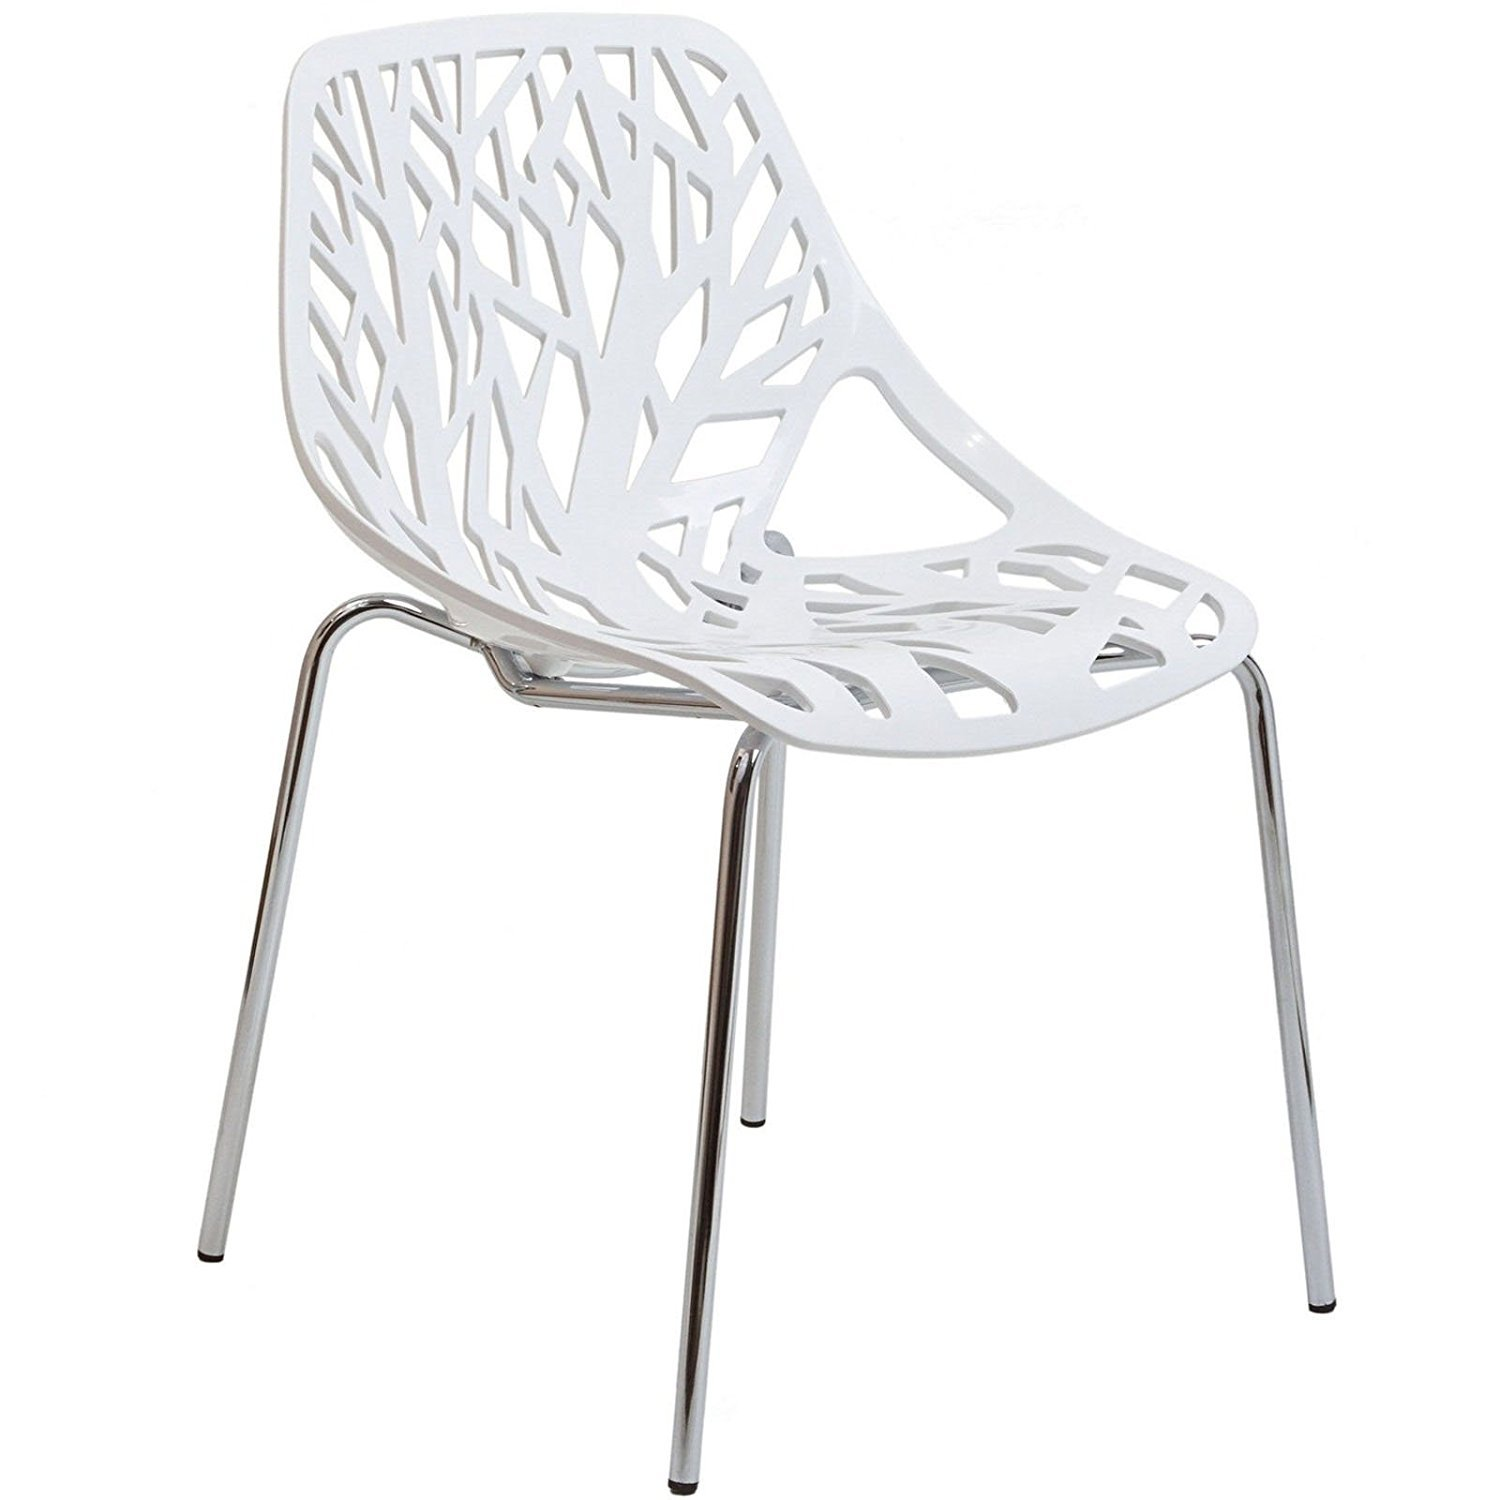 Restaurant Tables and Chairs - ''Dorotha'' Contemporary Restaurant Chair